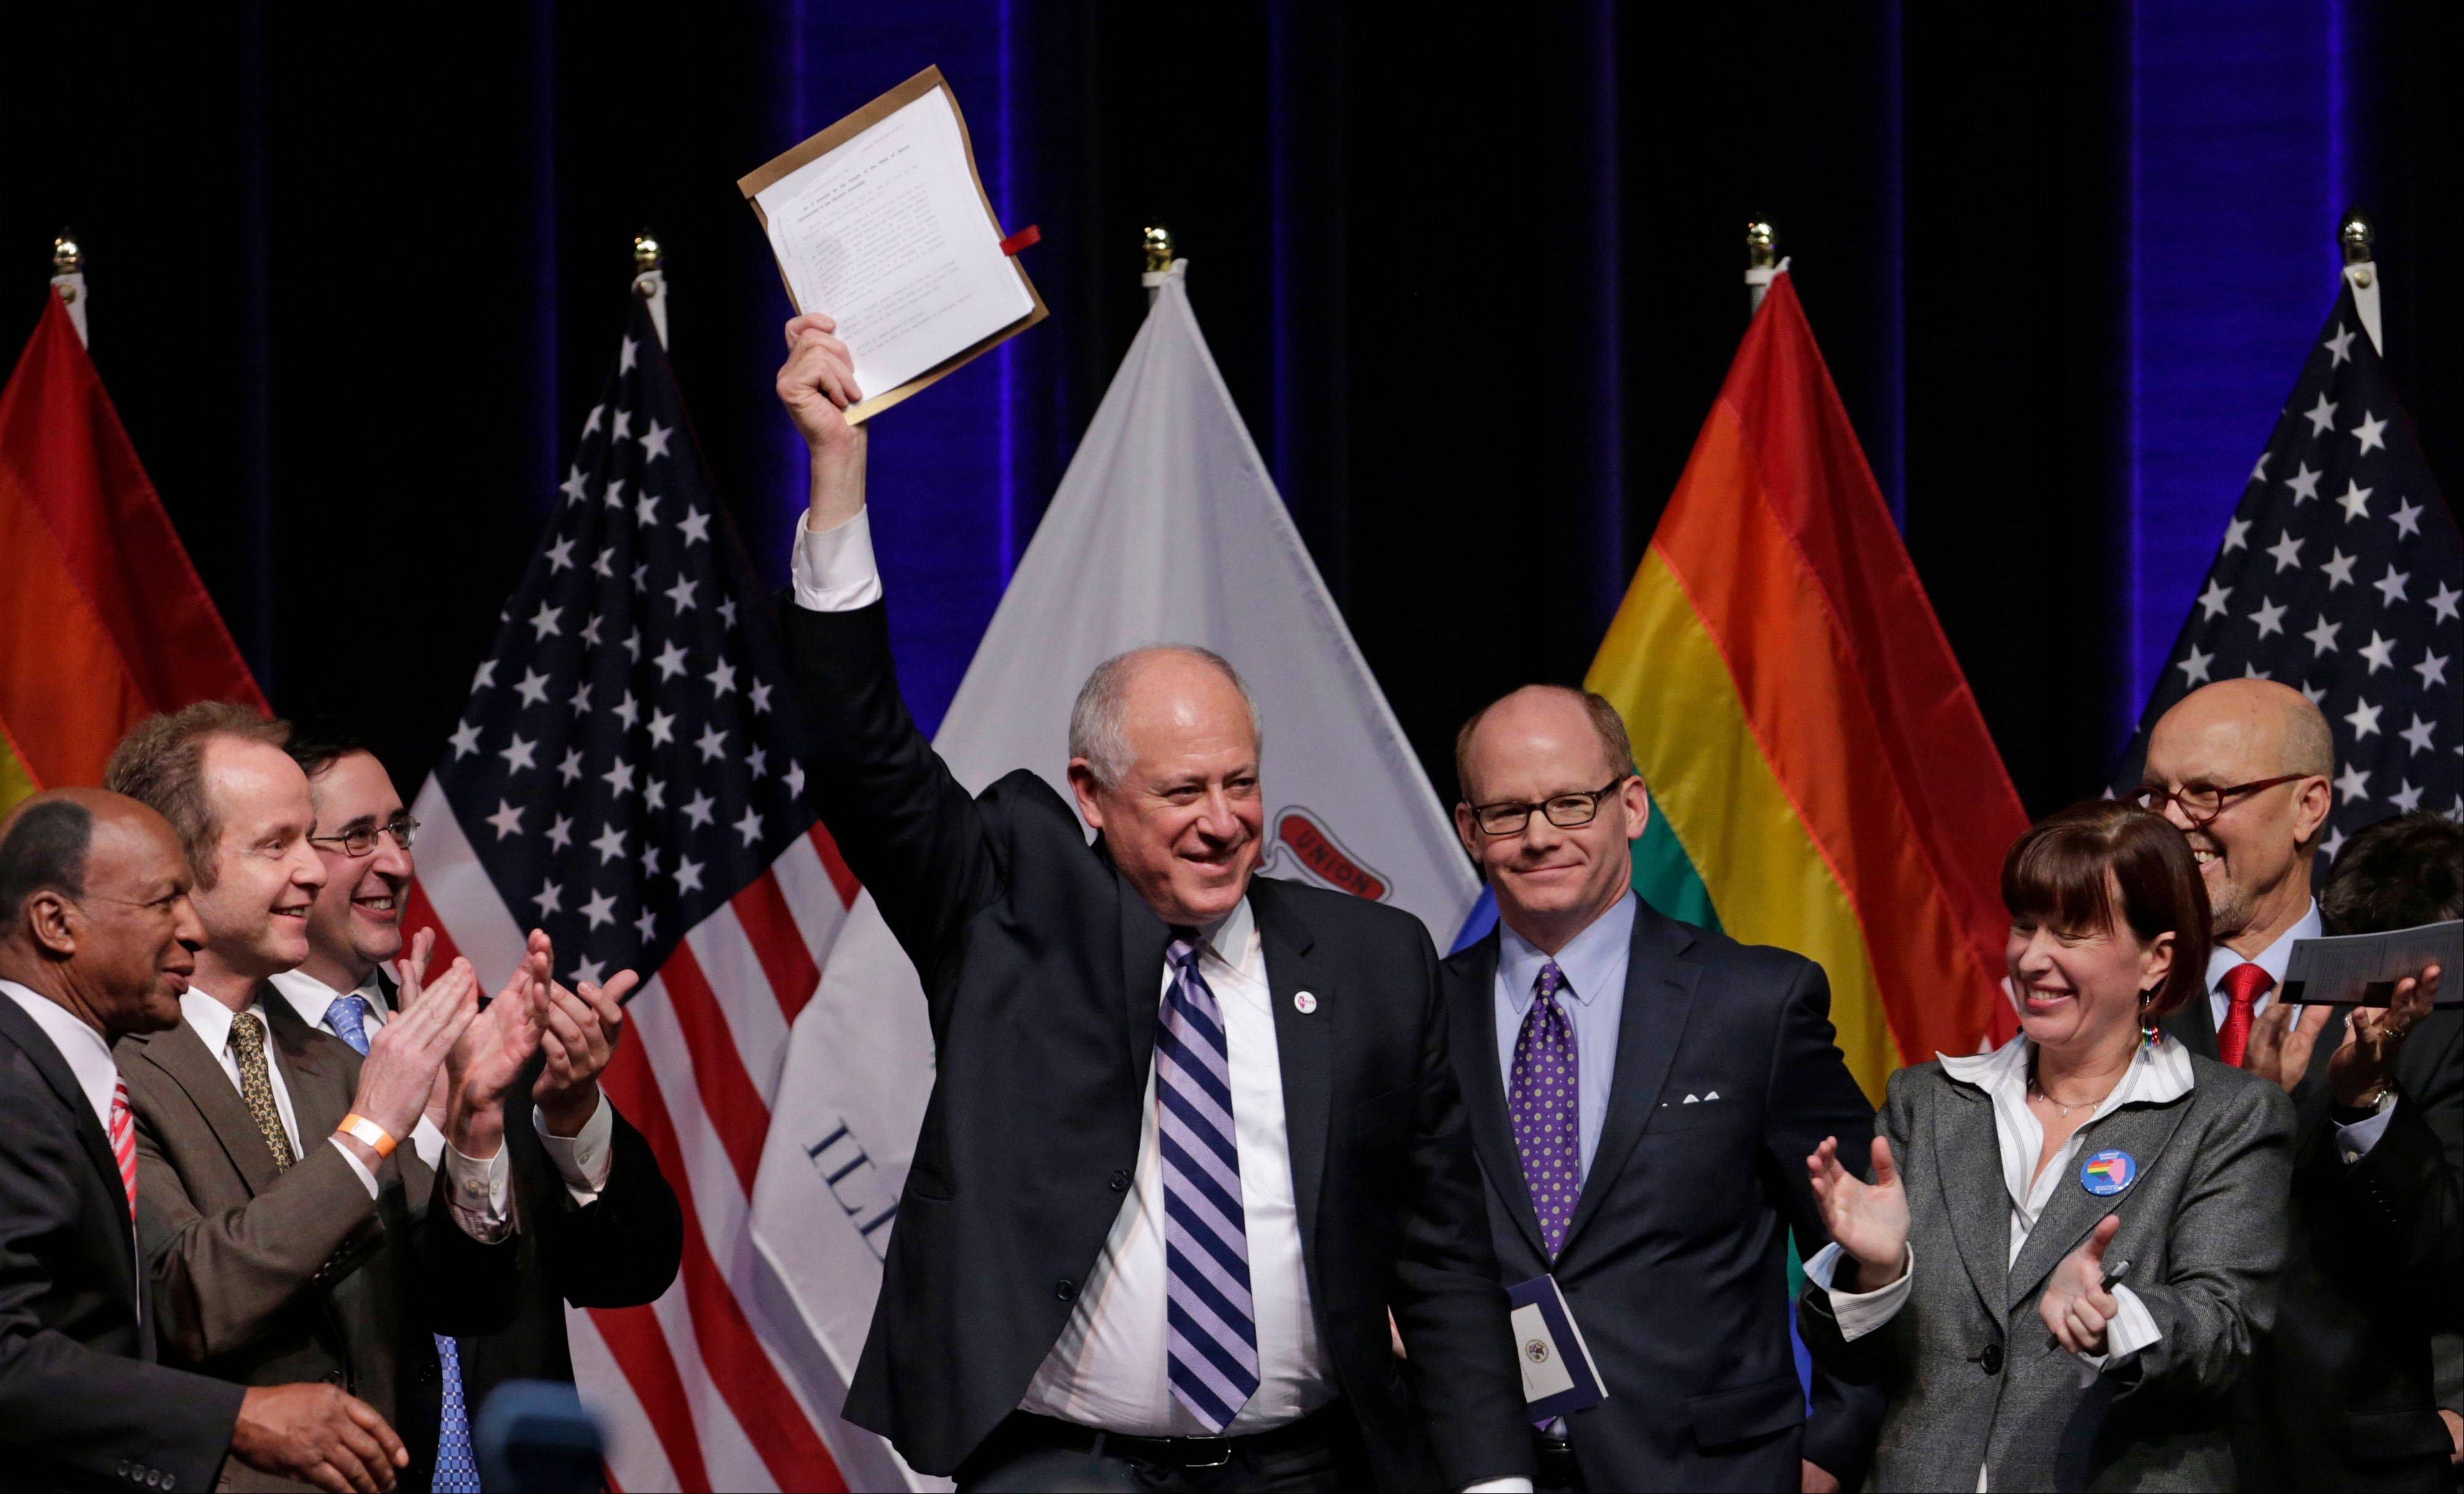 Illinois Gov. Pat Quinn acknowledges the applause after signing the Religious Freedom and Marriage Fairness Act into law, making Illinois the 16th state in the nation to embrace full marriage equality for same sex couples.